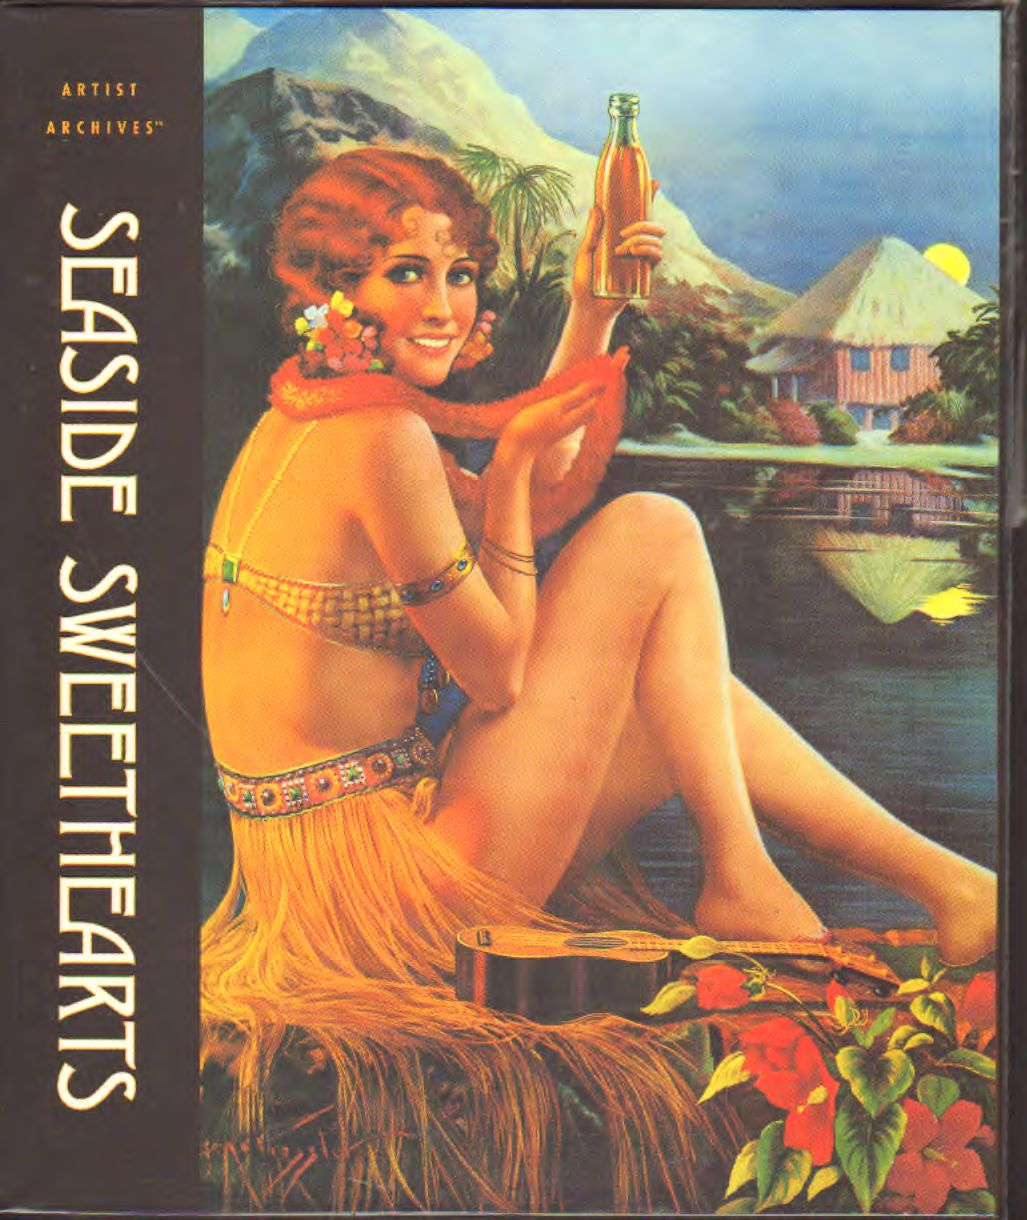 AA.VV - Artist Archives – Seaside Sweethearts